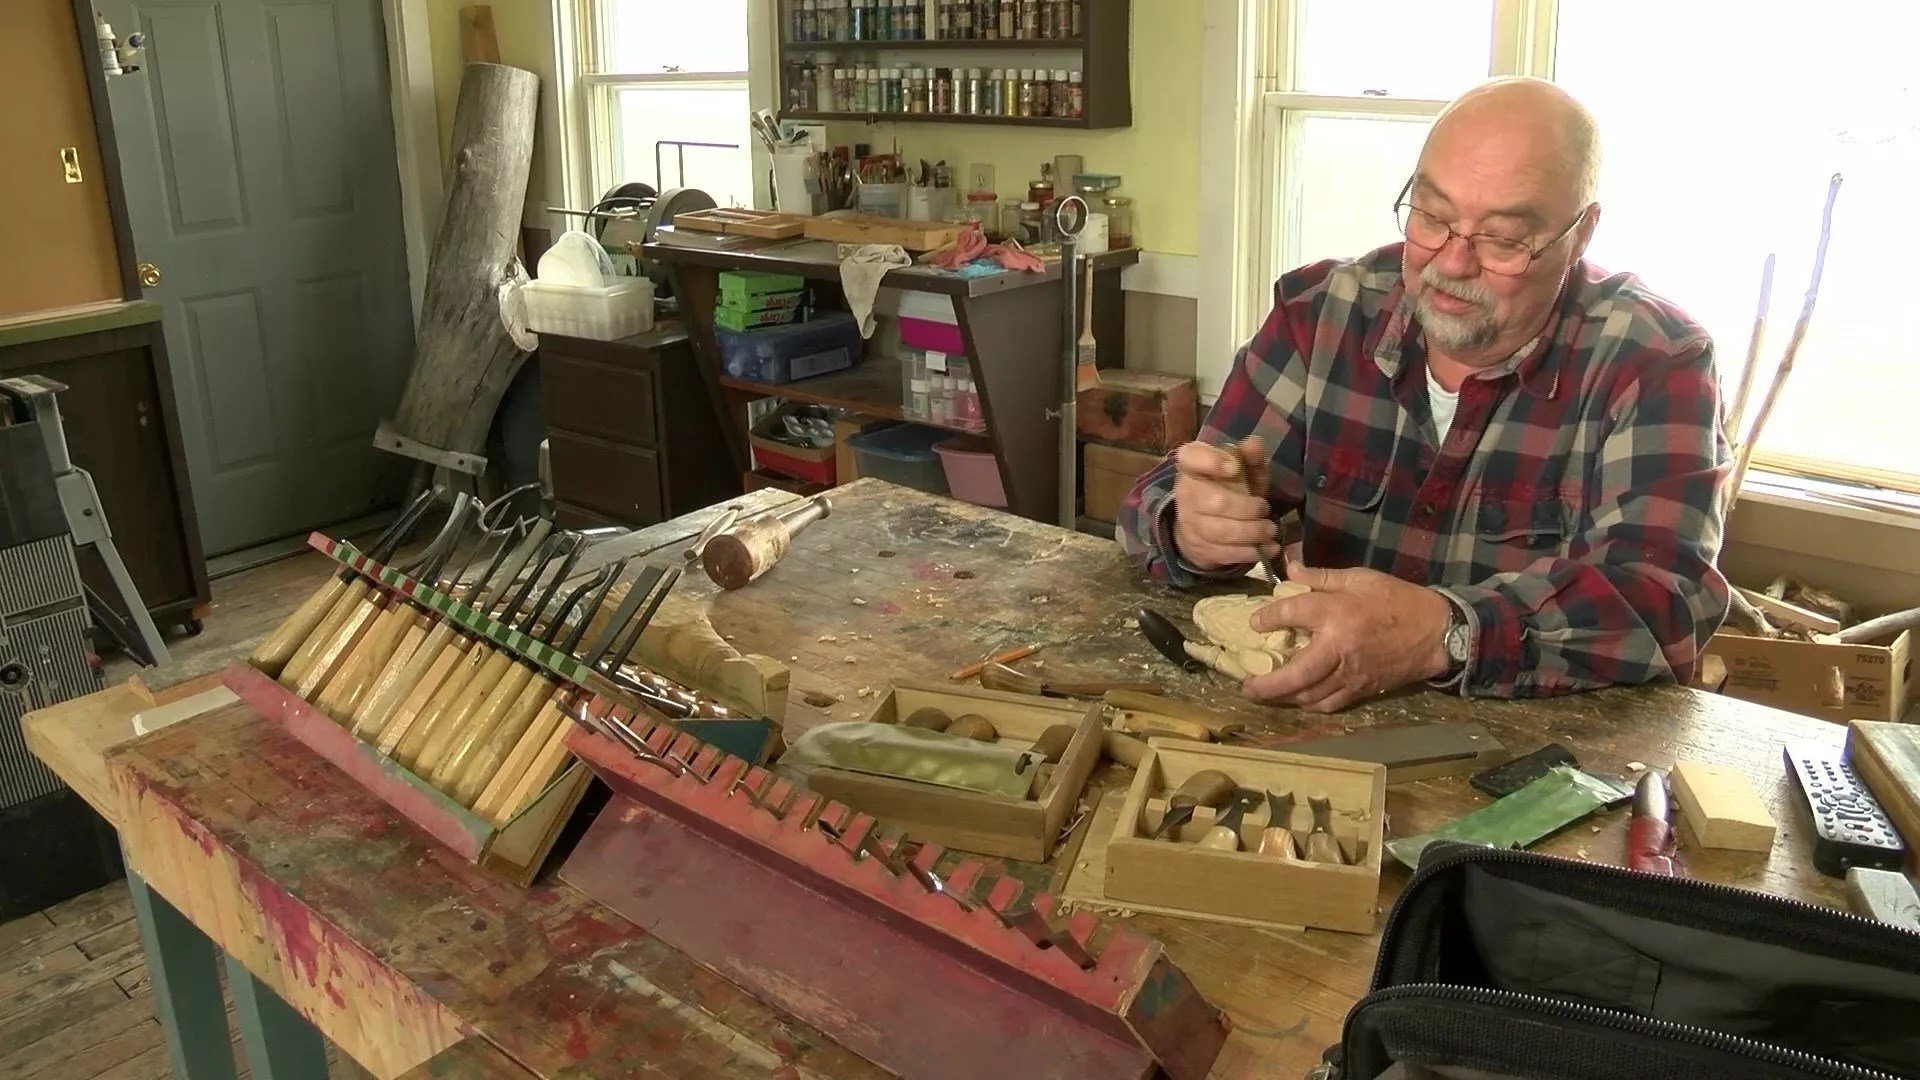 Bob Kovatch produces by hand everything from animalstogarden sculptures in a variety of media. (MTN News photo)